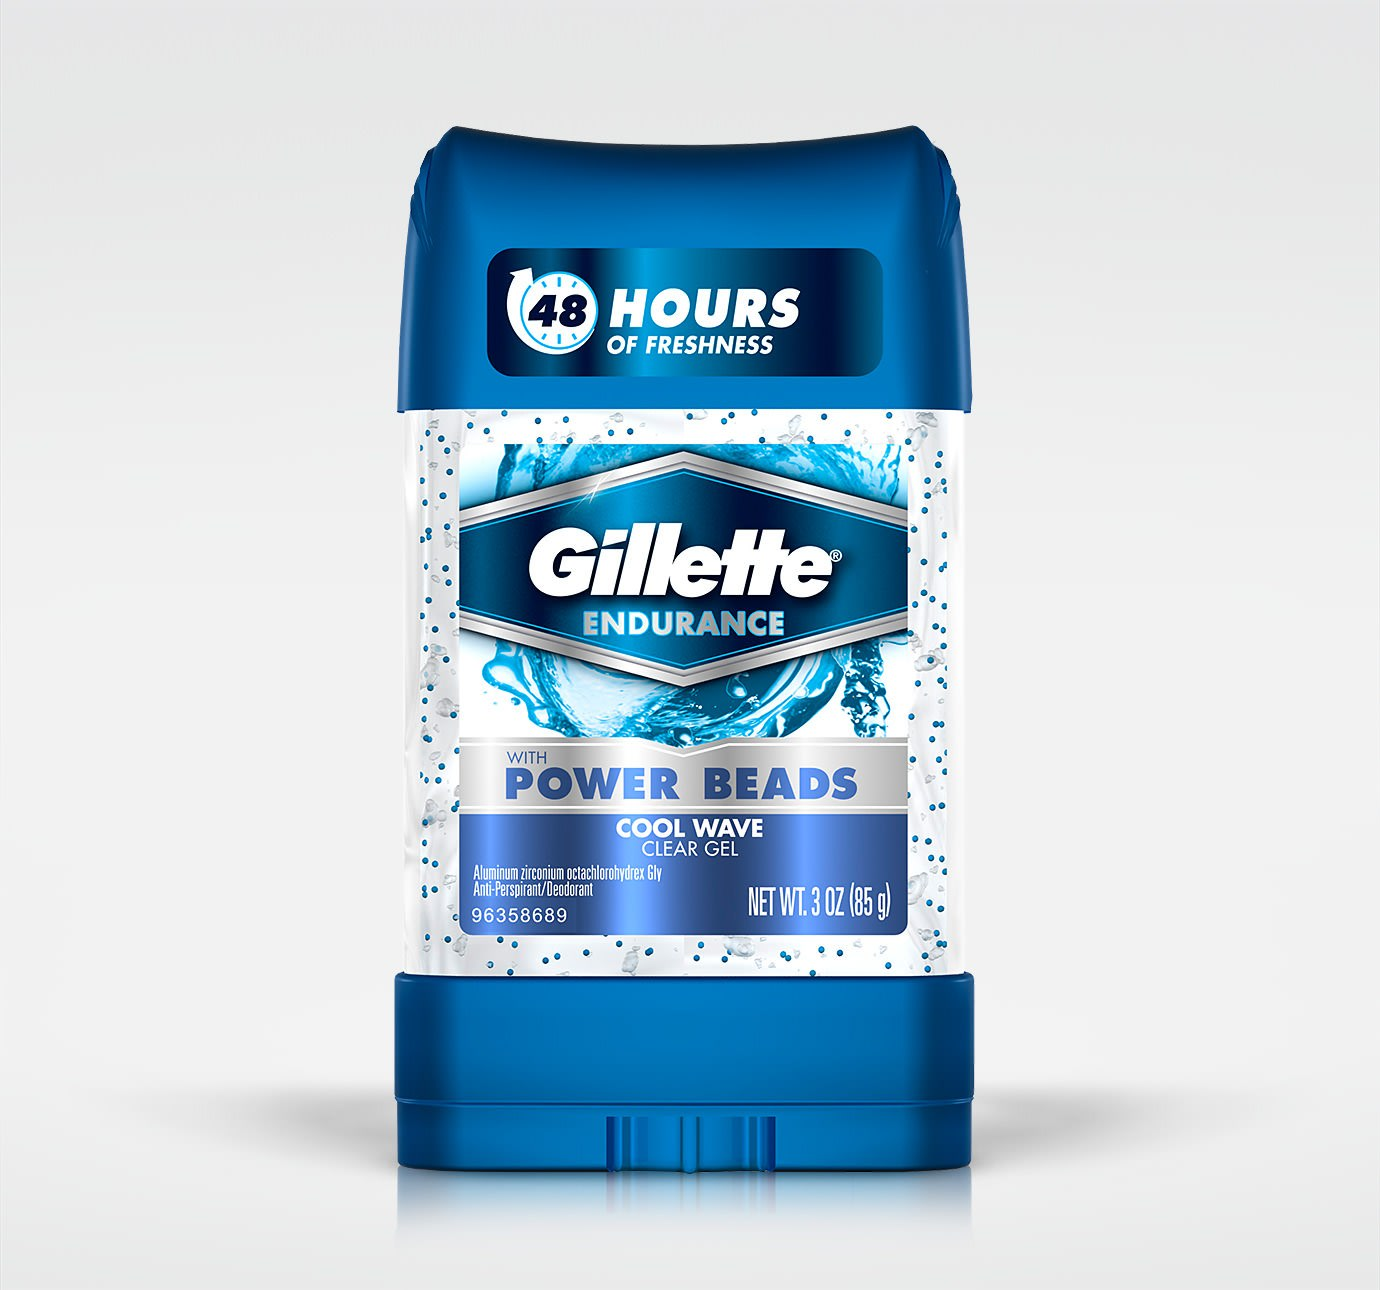 gillette power beads cool wave apdo pkg